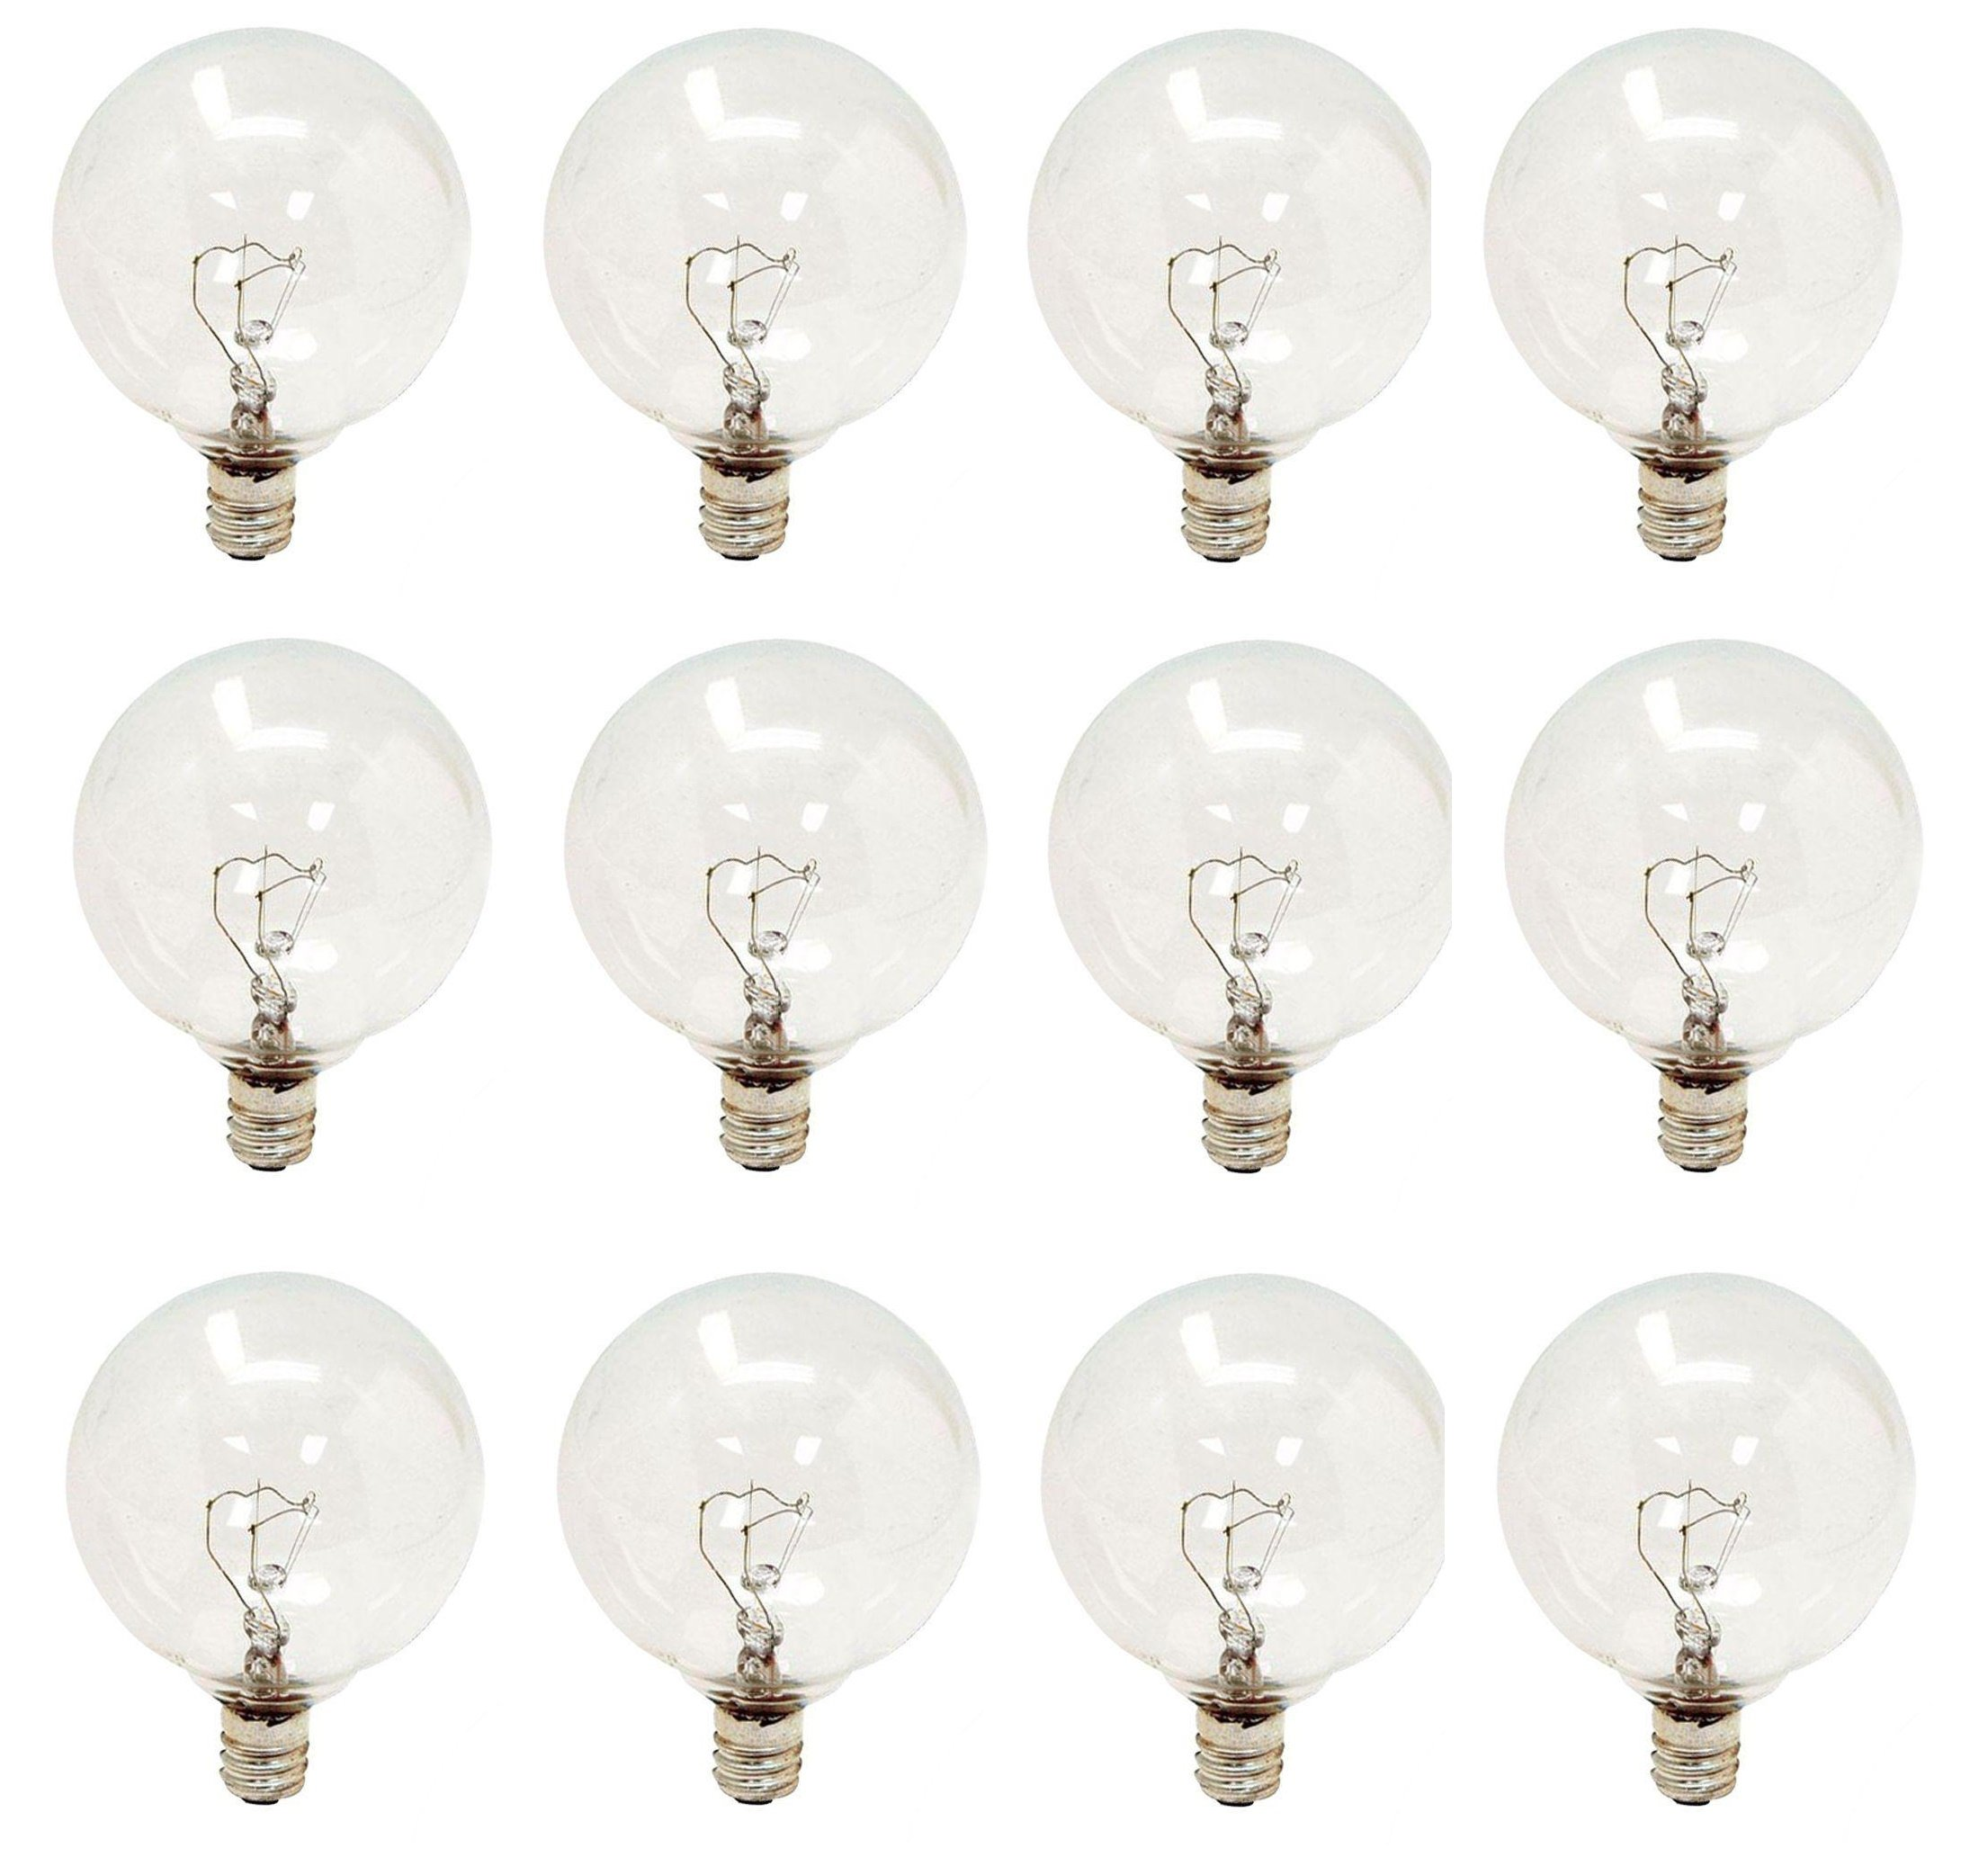 (Pack of 12) Dimmable 25 Watt 120 Volt, Candelabra Base, Globe Shape Light Bulbs, Decorative G16.5, 15G16 1/2, 120v